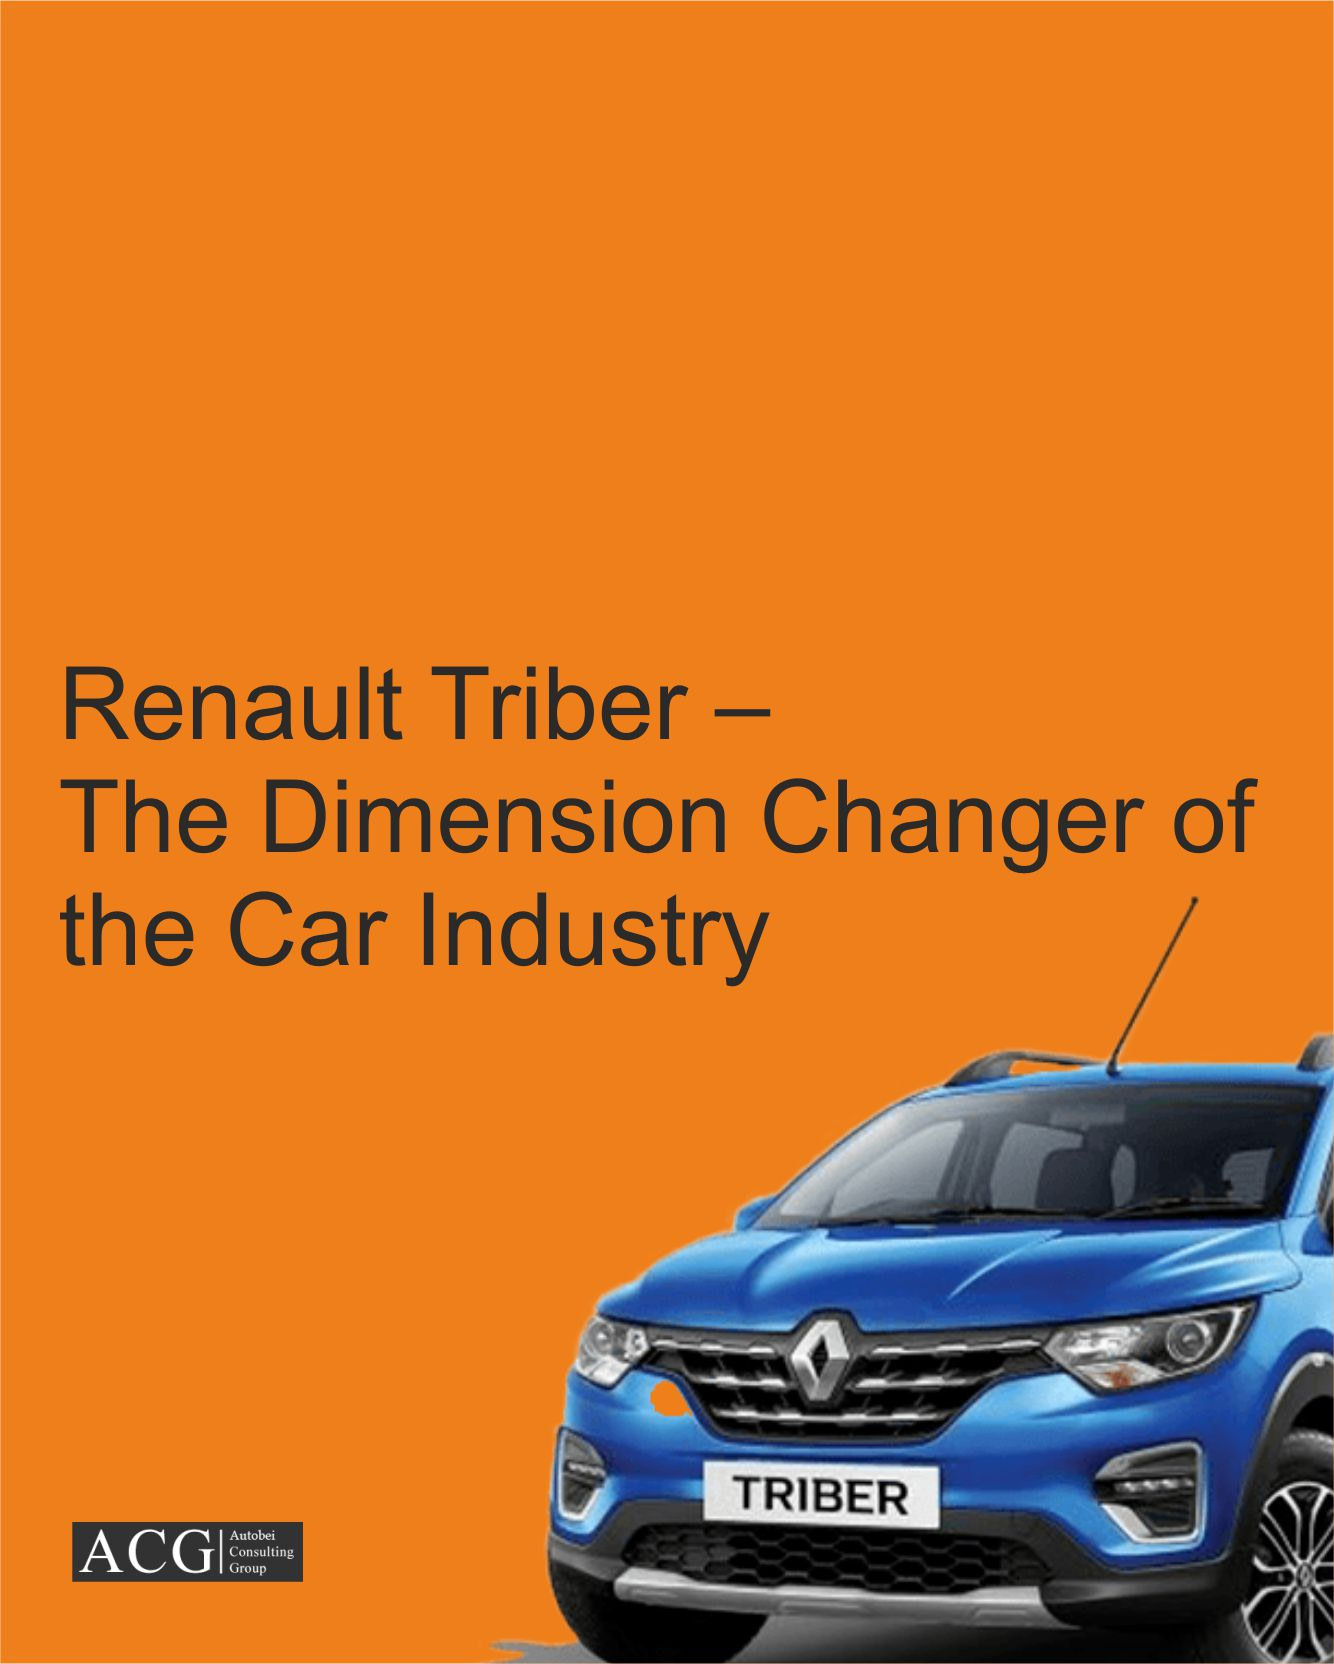 The Dimension Changer Of The Car Industry